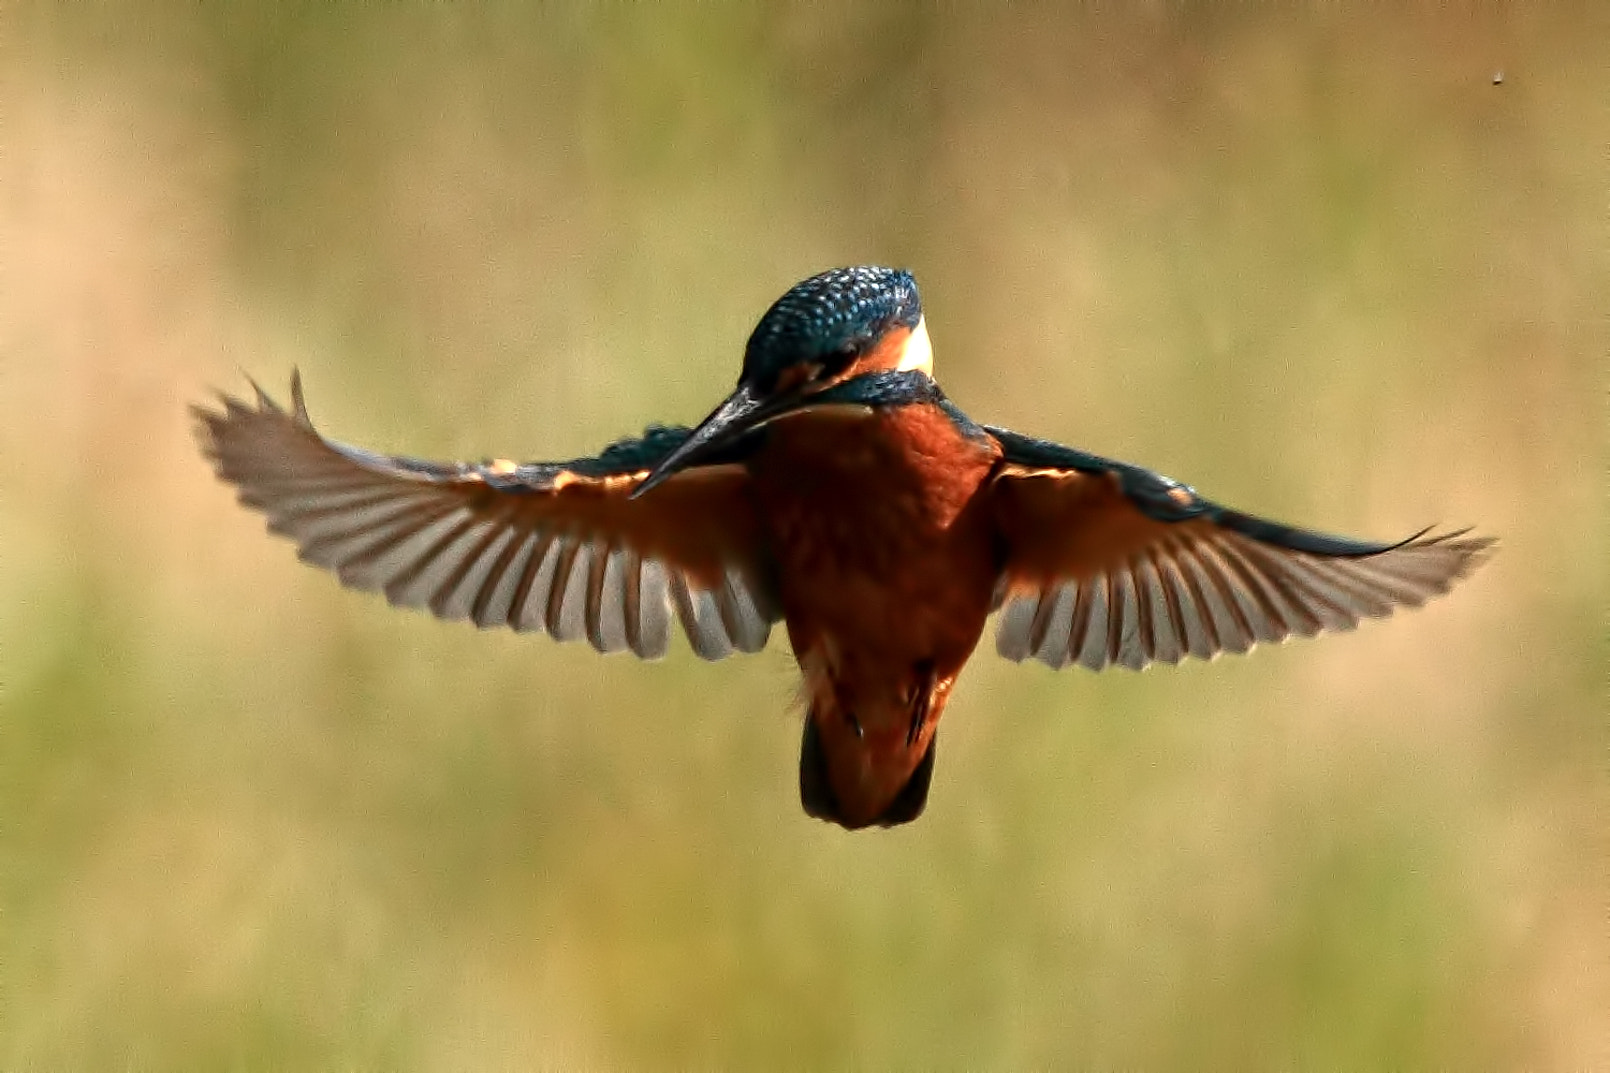 Photograph Hovering Kingfisher by Geoff Haynes on 500px